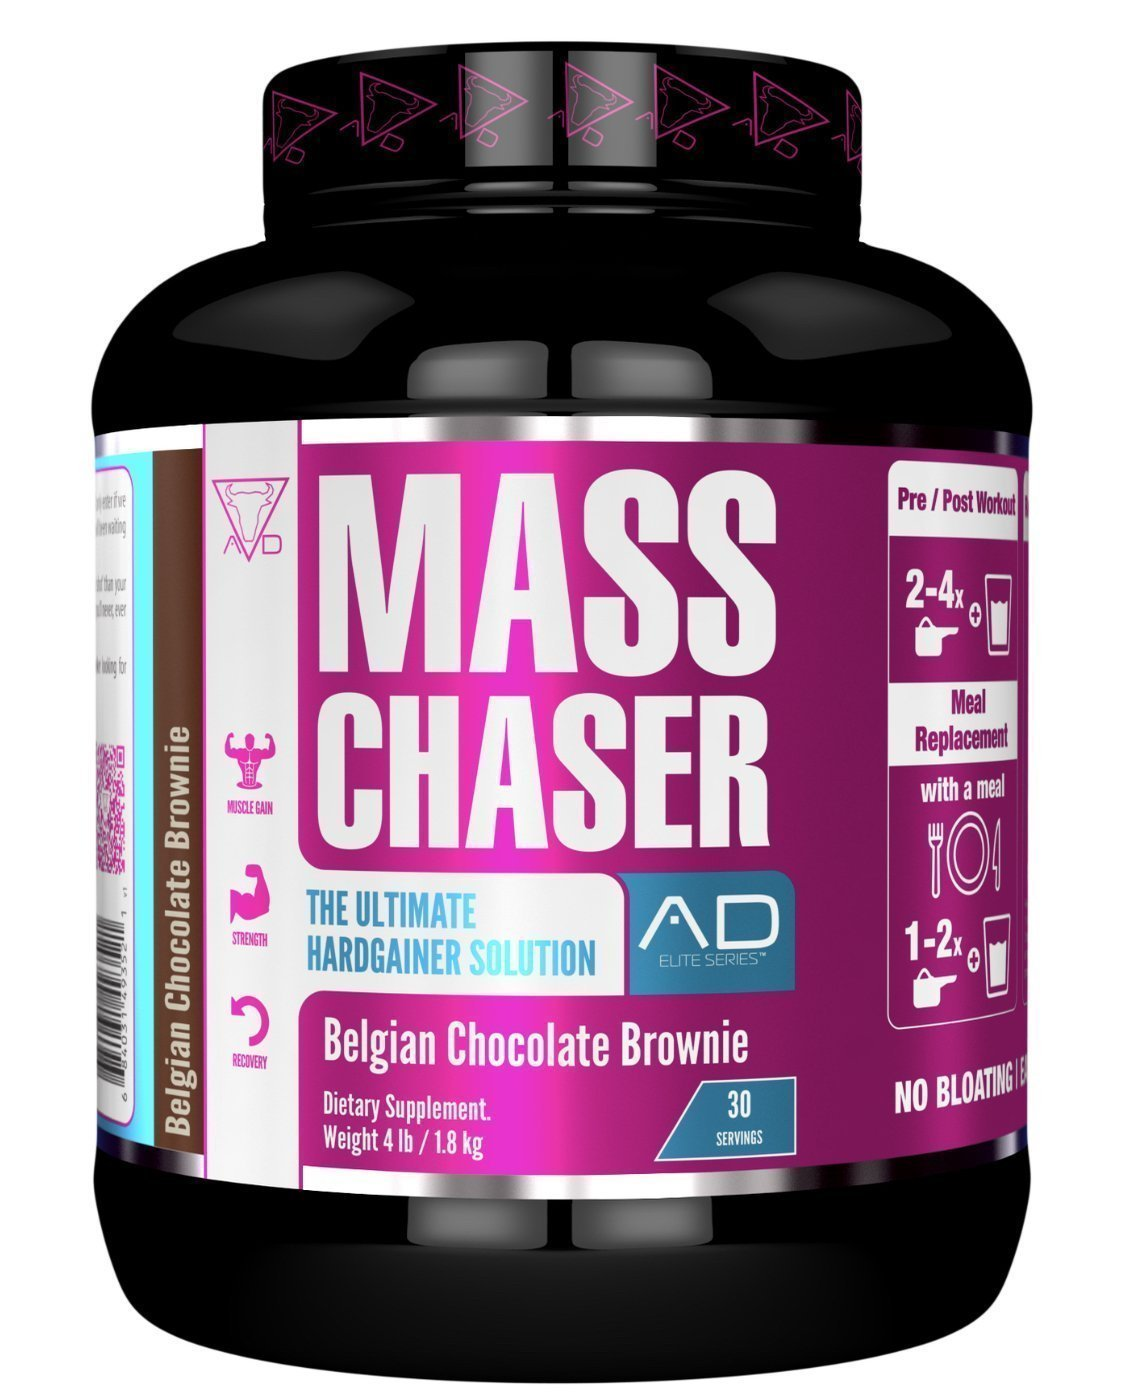 Project AD MASS CHASER